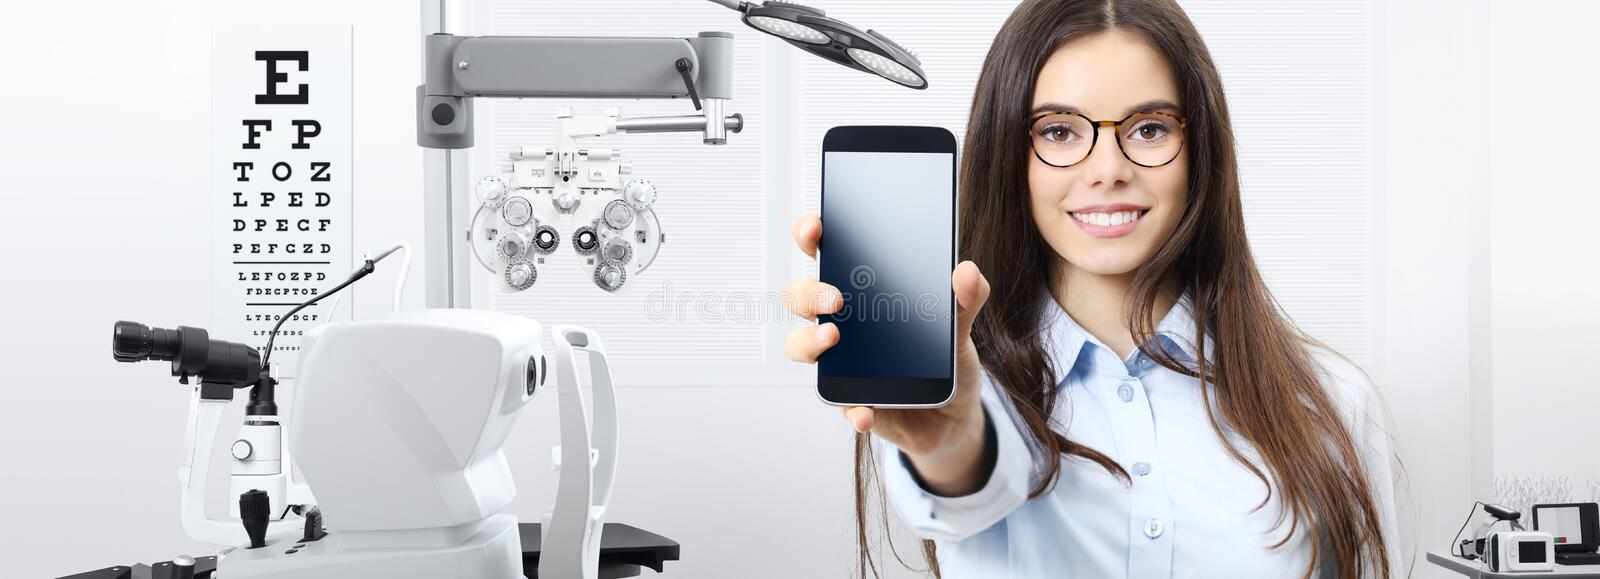 Concept of eye examination, smiling woman with spectacles showing mobile phone in optometrist office, contact us, appointment and stock photos